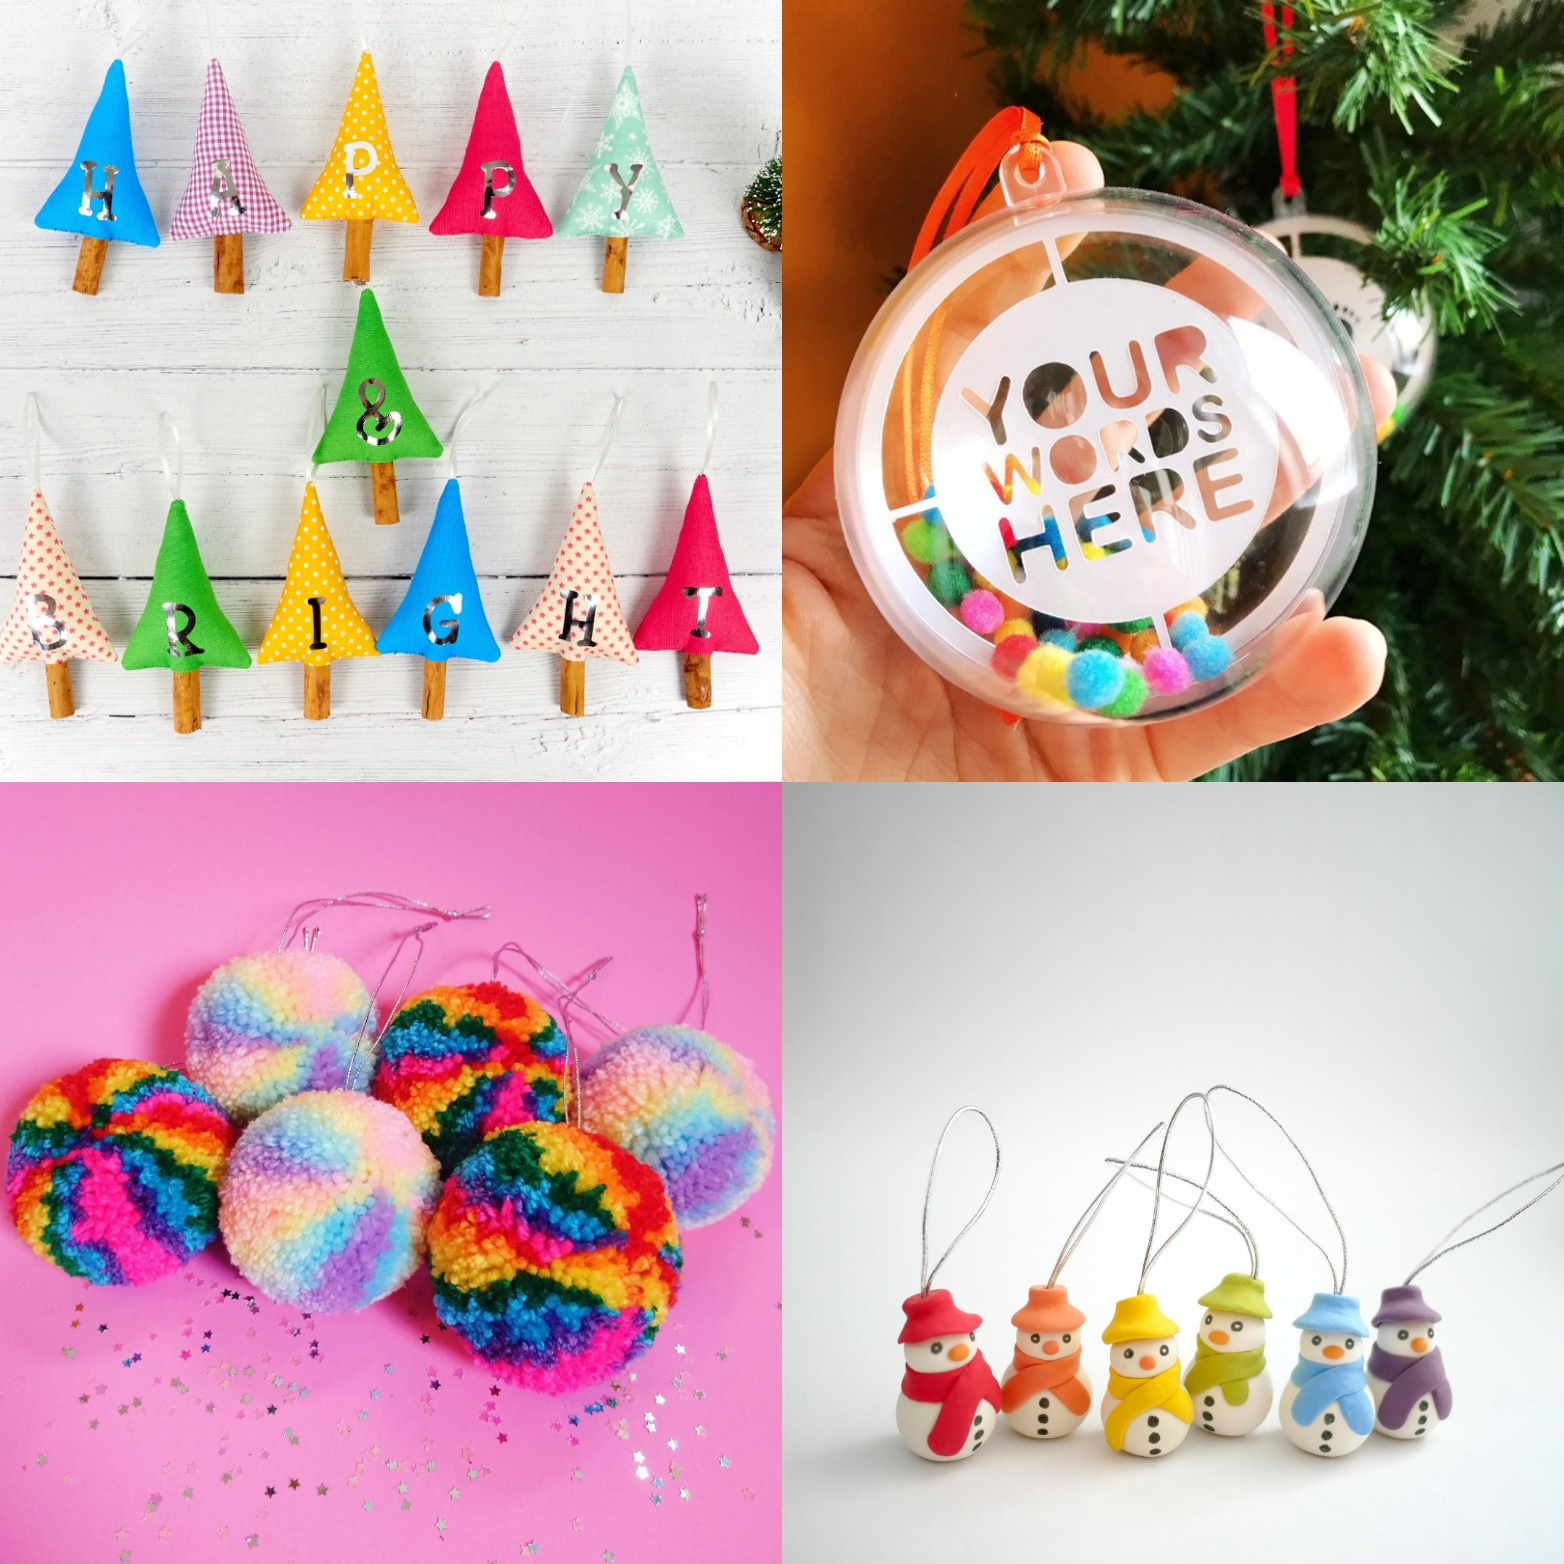 Merry rainbow Christmas Etsy more tree decorations | Hello! Hooray!